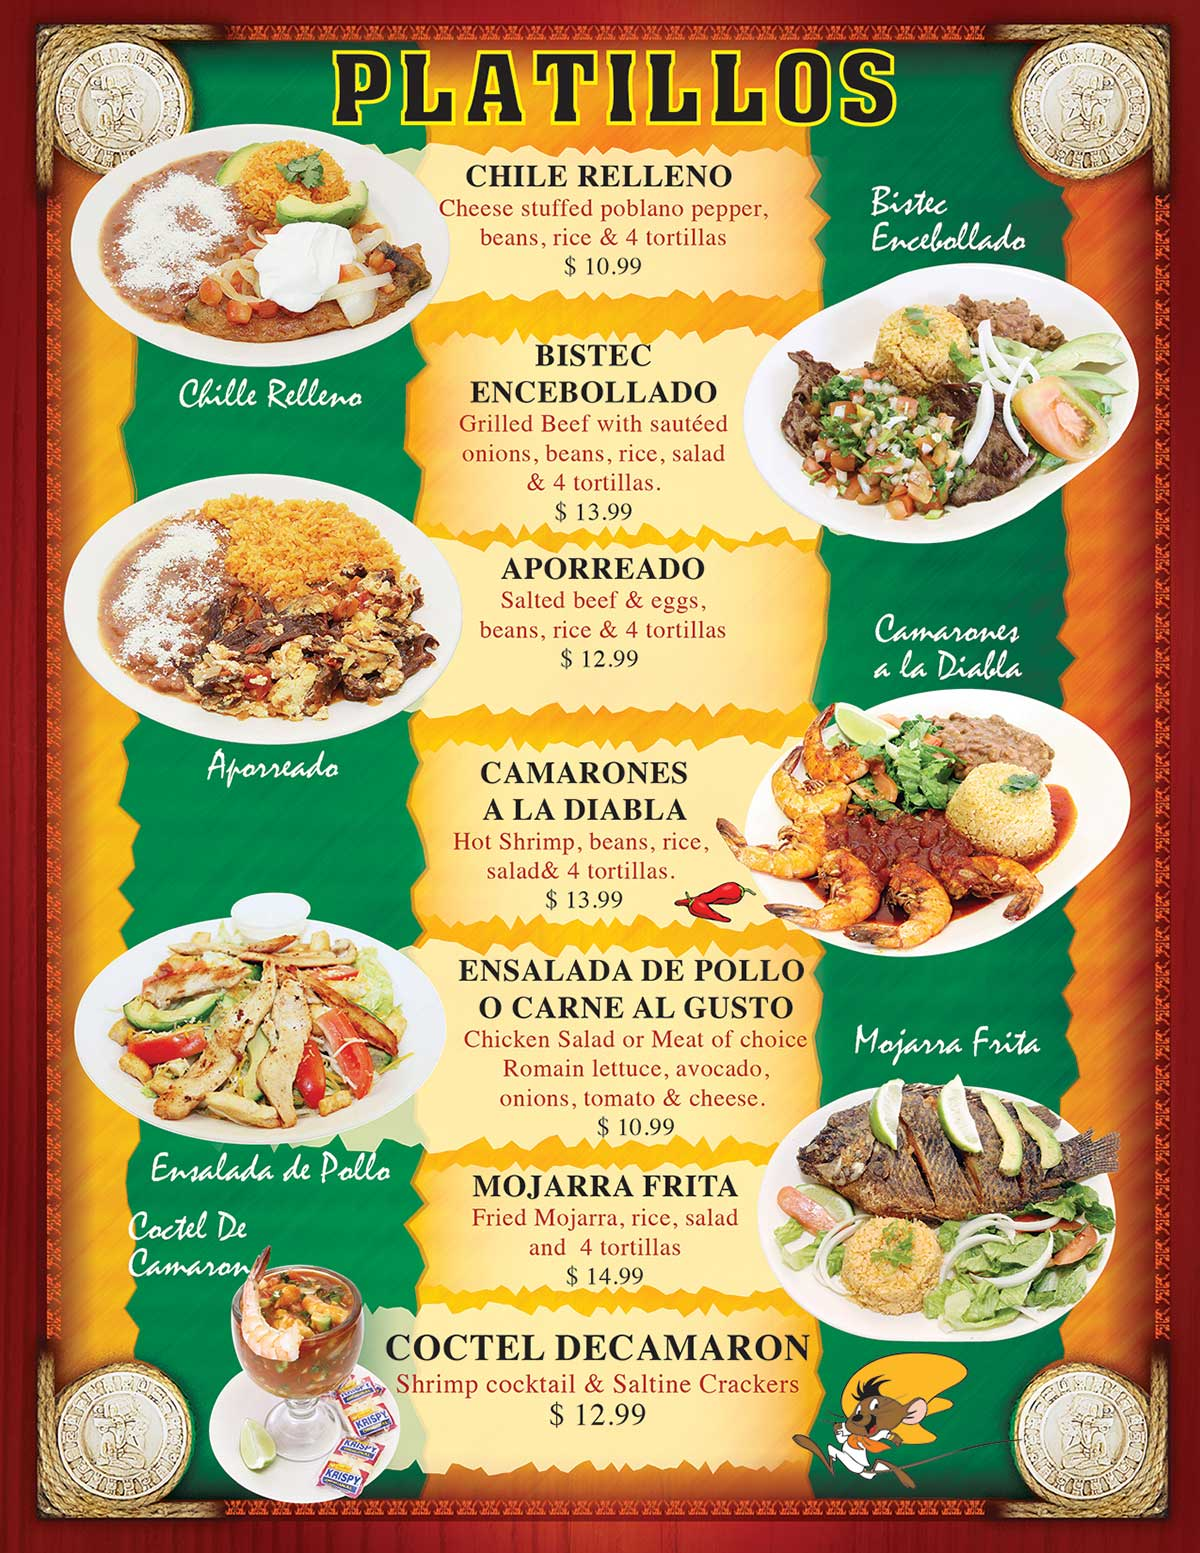 TACOS MADRIGAL MENU PAGE 5